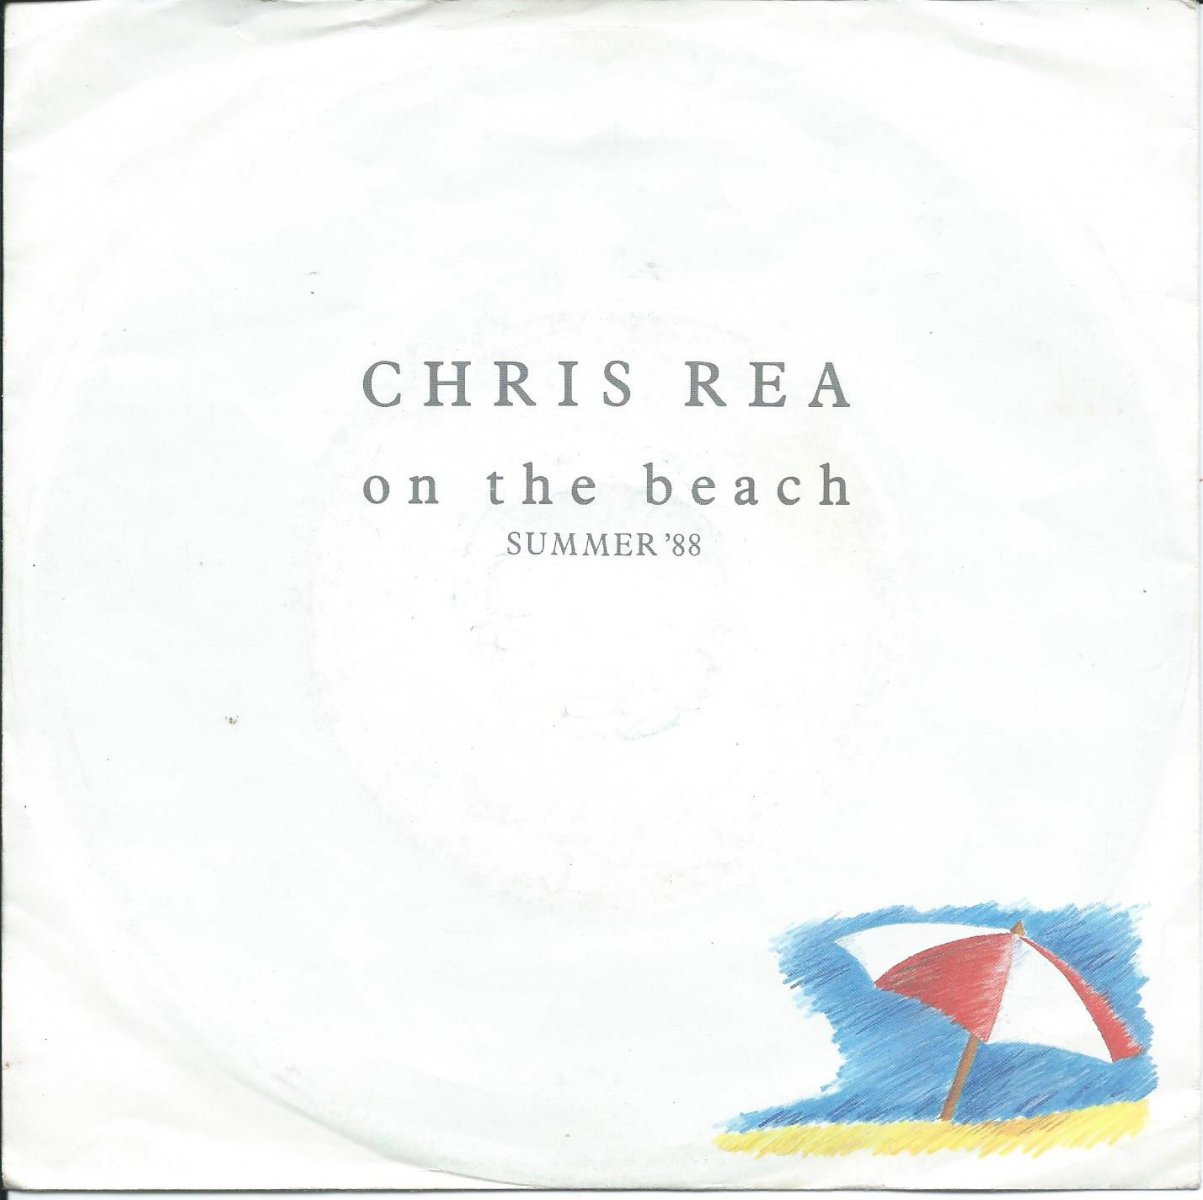 CHRIS REA / ON THE BEACH (SUMMER '88) / I'M TAKING THE DAY OUT (7